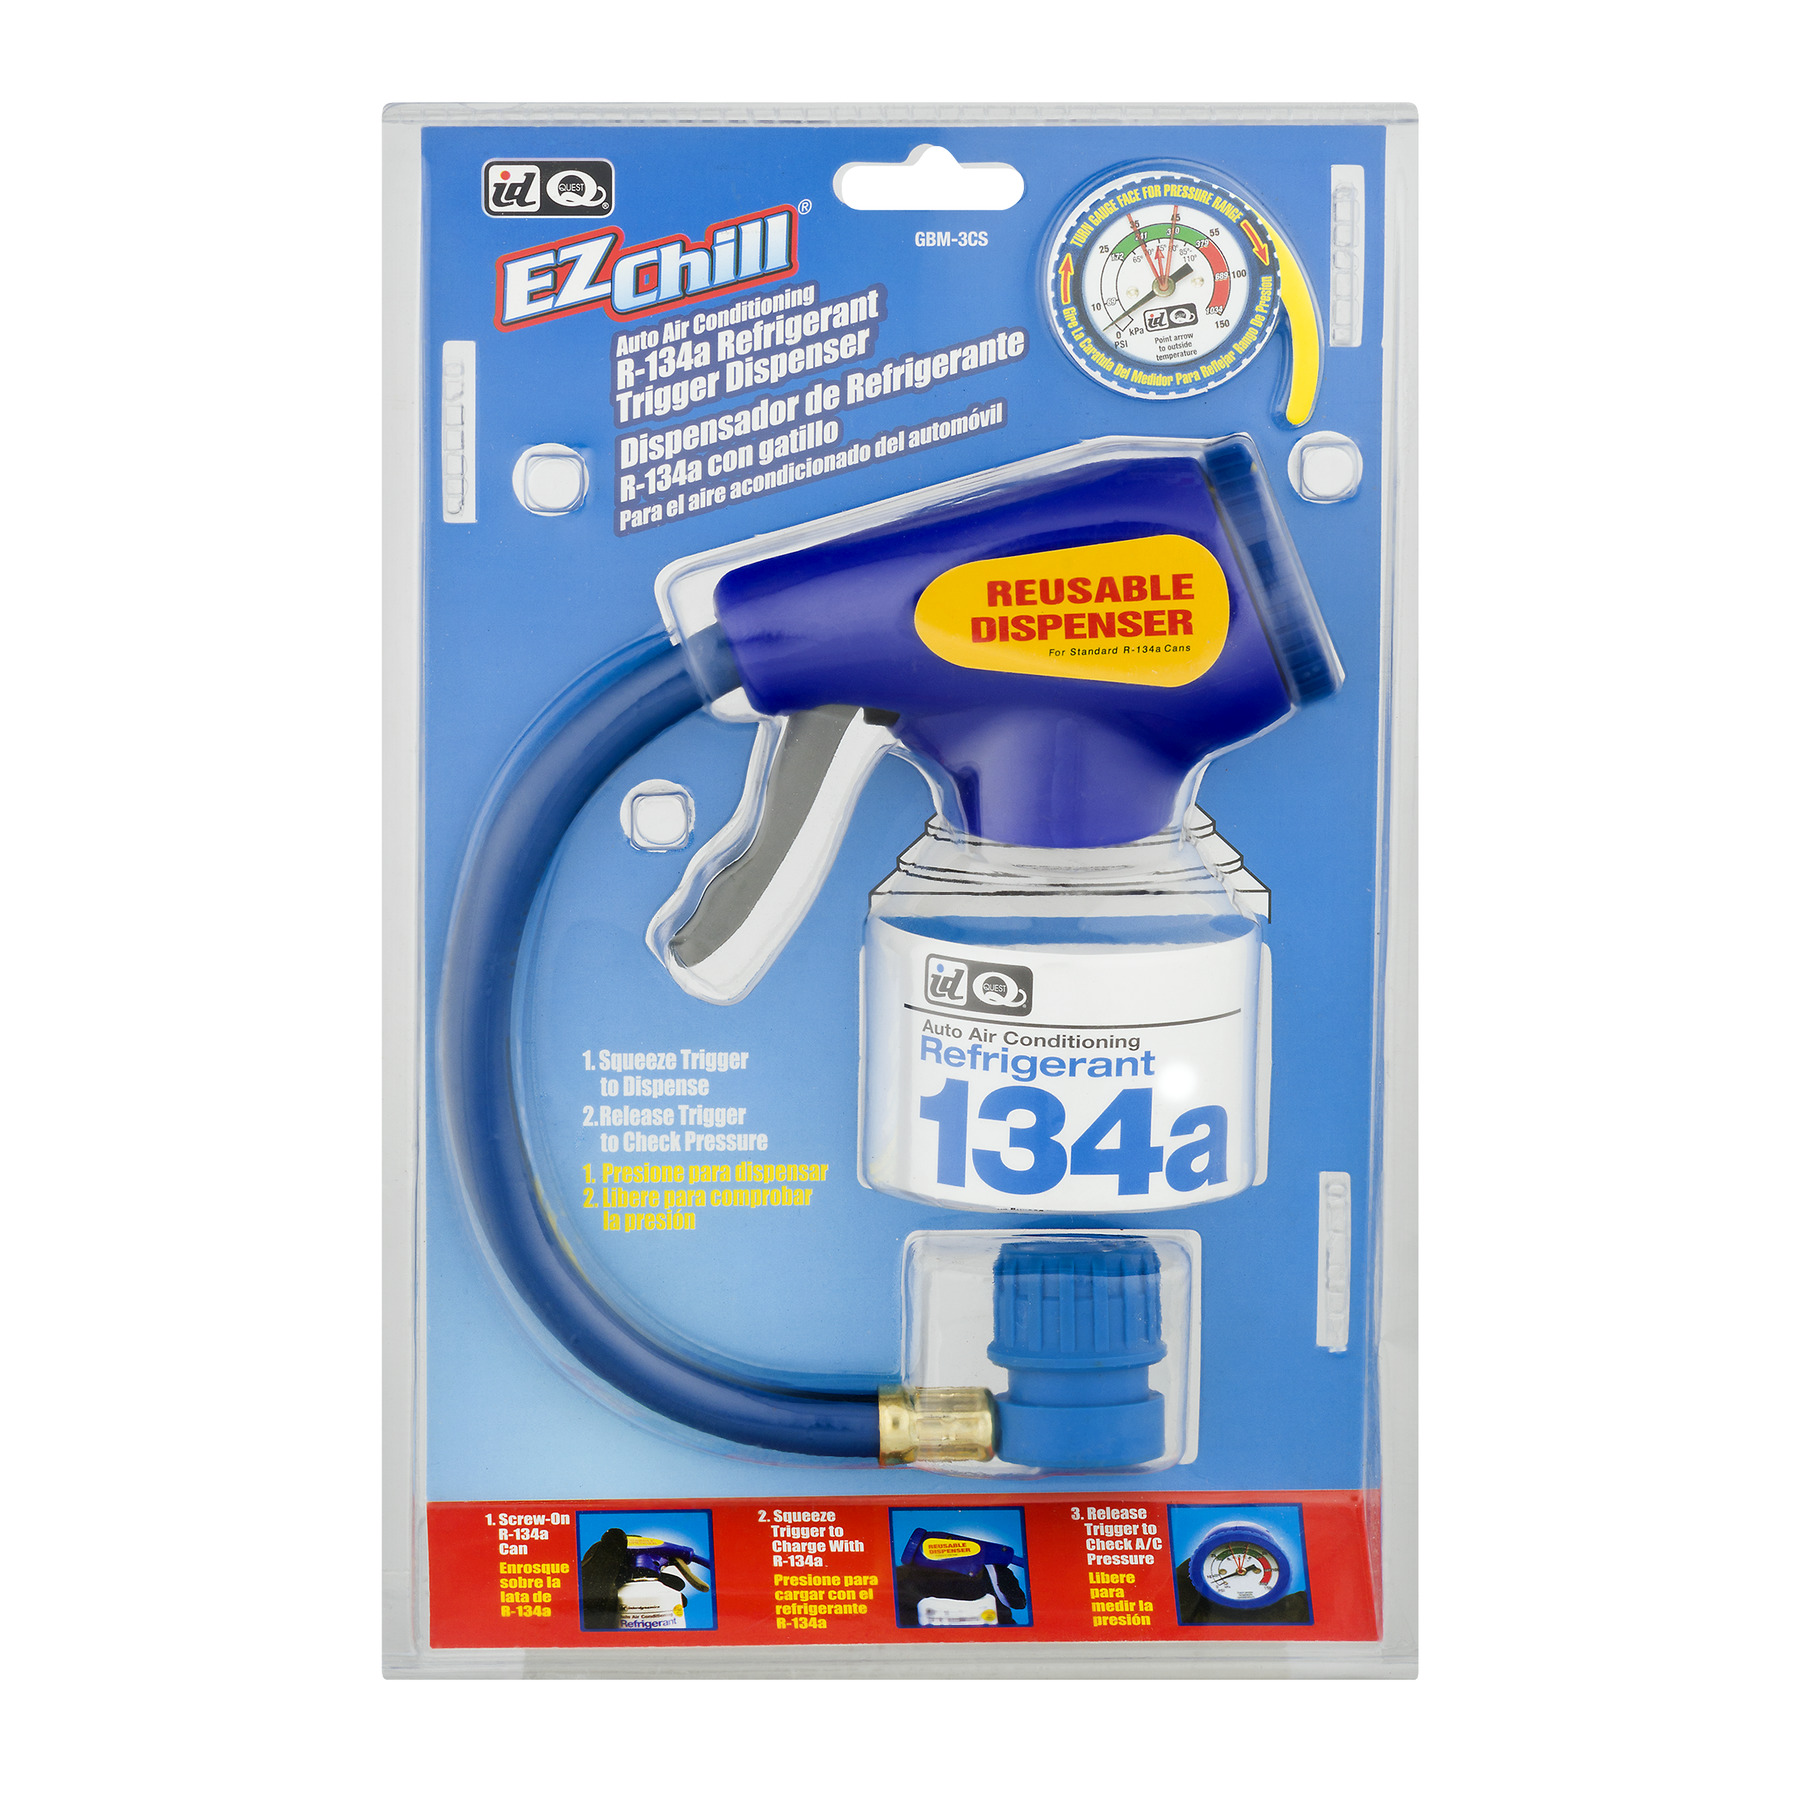 EZ Chill Auto Air Conditioning Refrigerant 134a